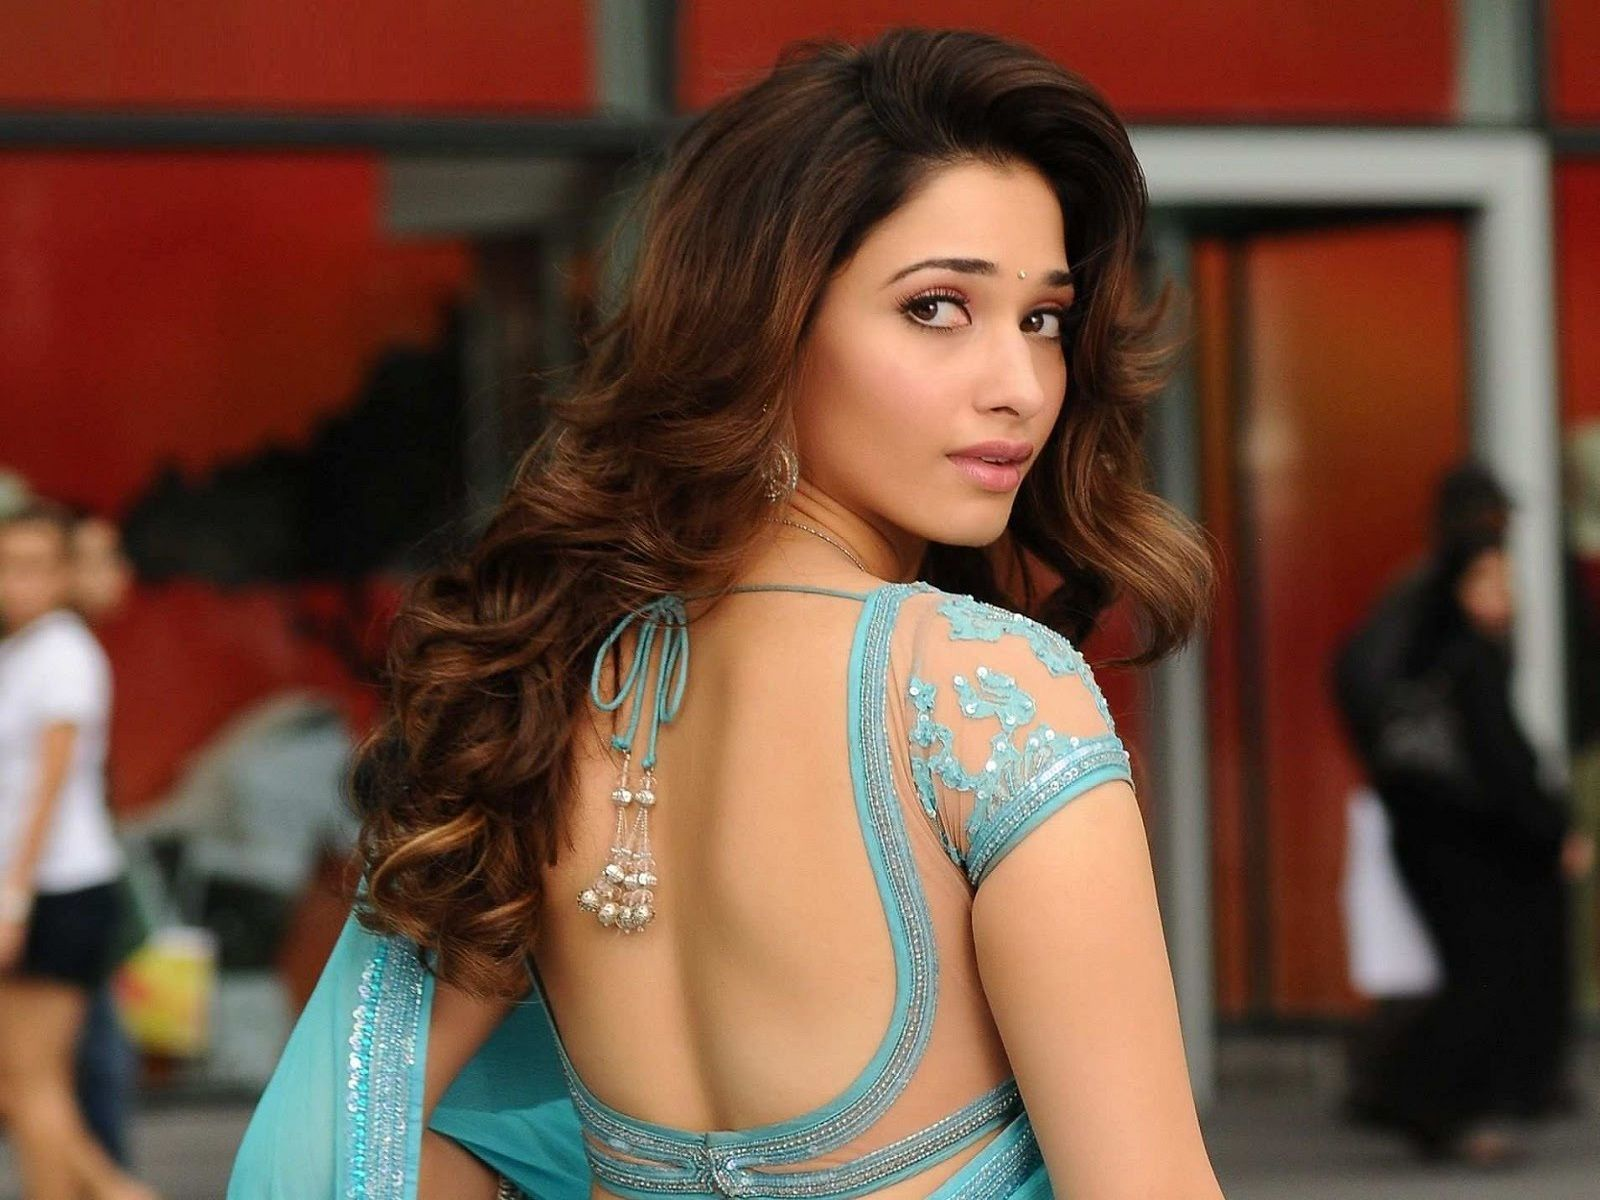 Tamanna Bhatia Hd Wallpapers In Saree Tamanna Bhatia Pinterest